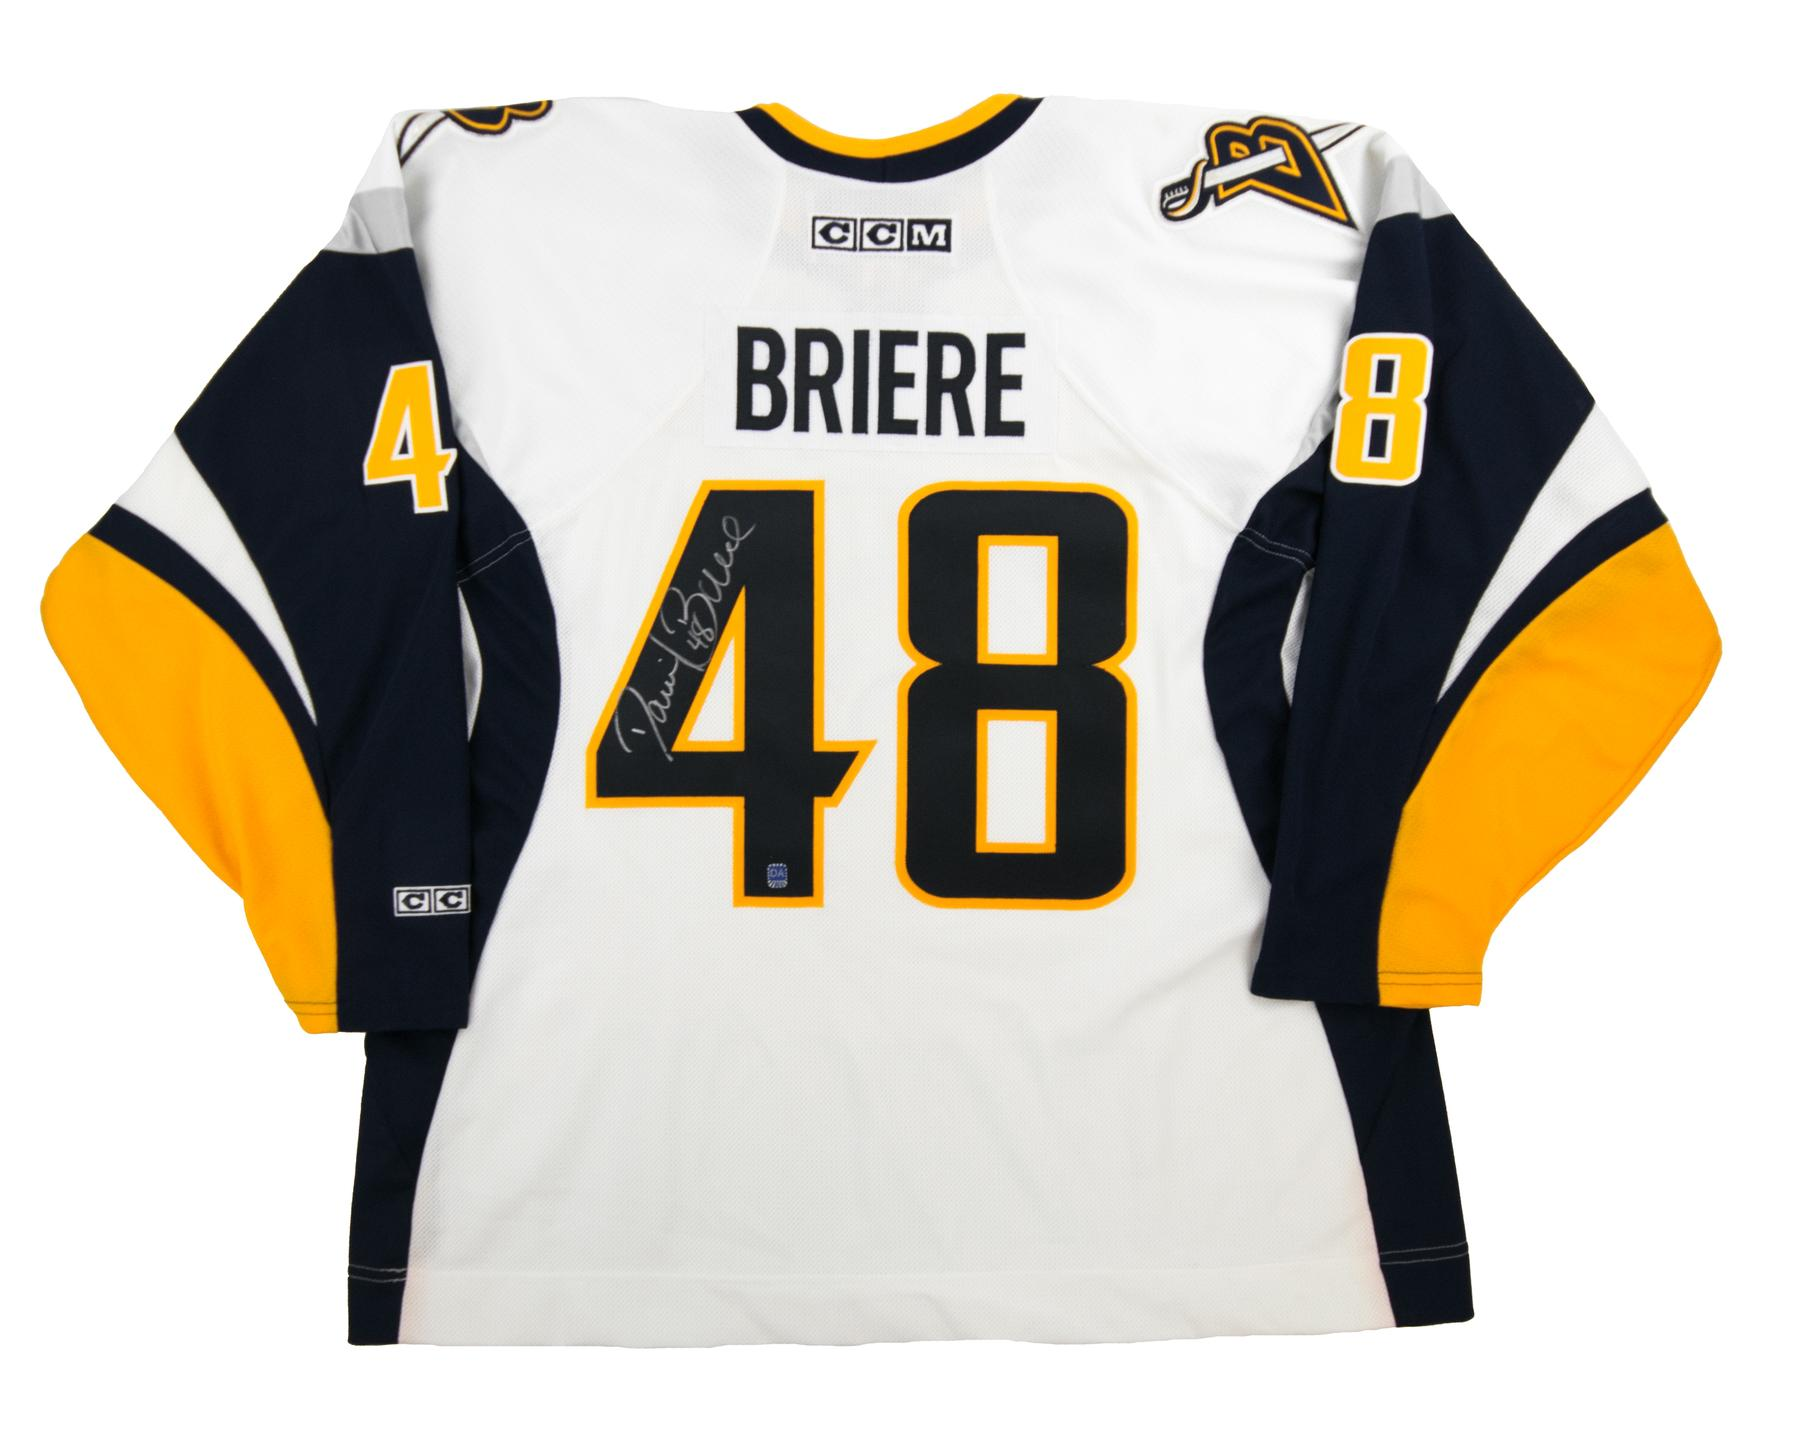 0d152d06f Daniel Briere Autographed Buffalo Sabres XXL White Hockey Jersey